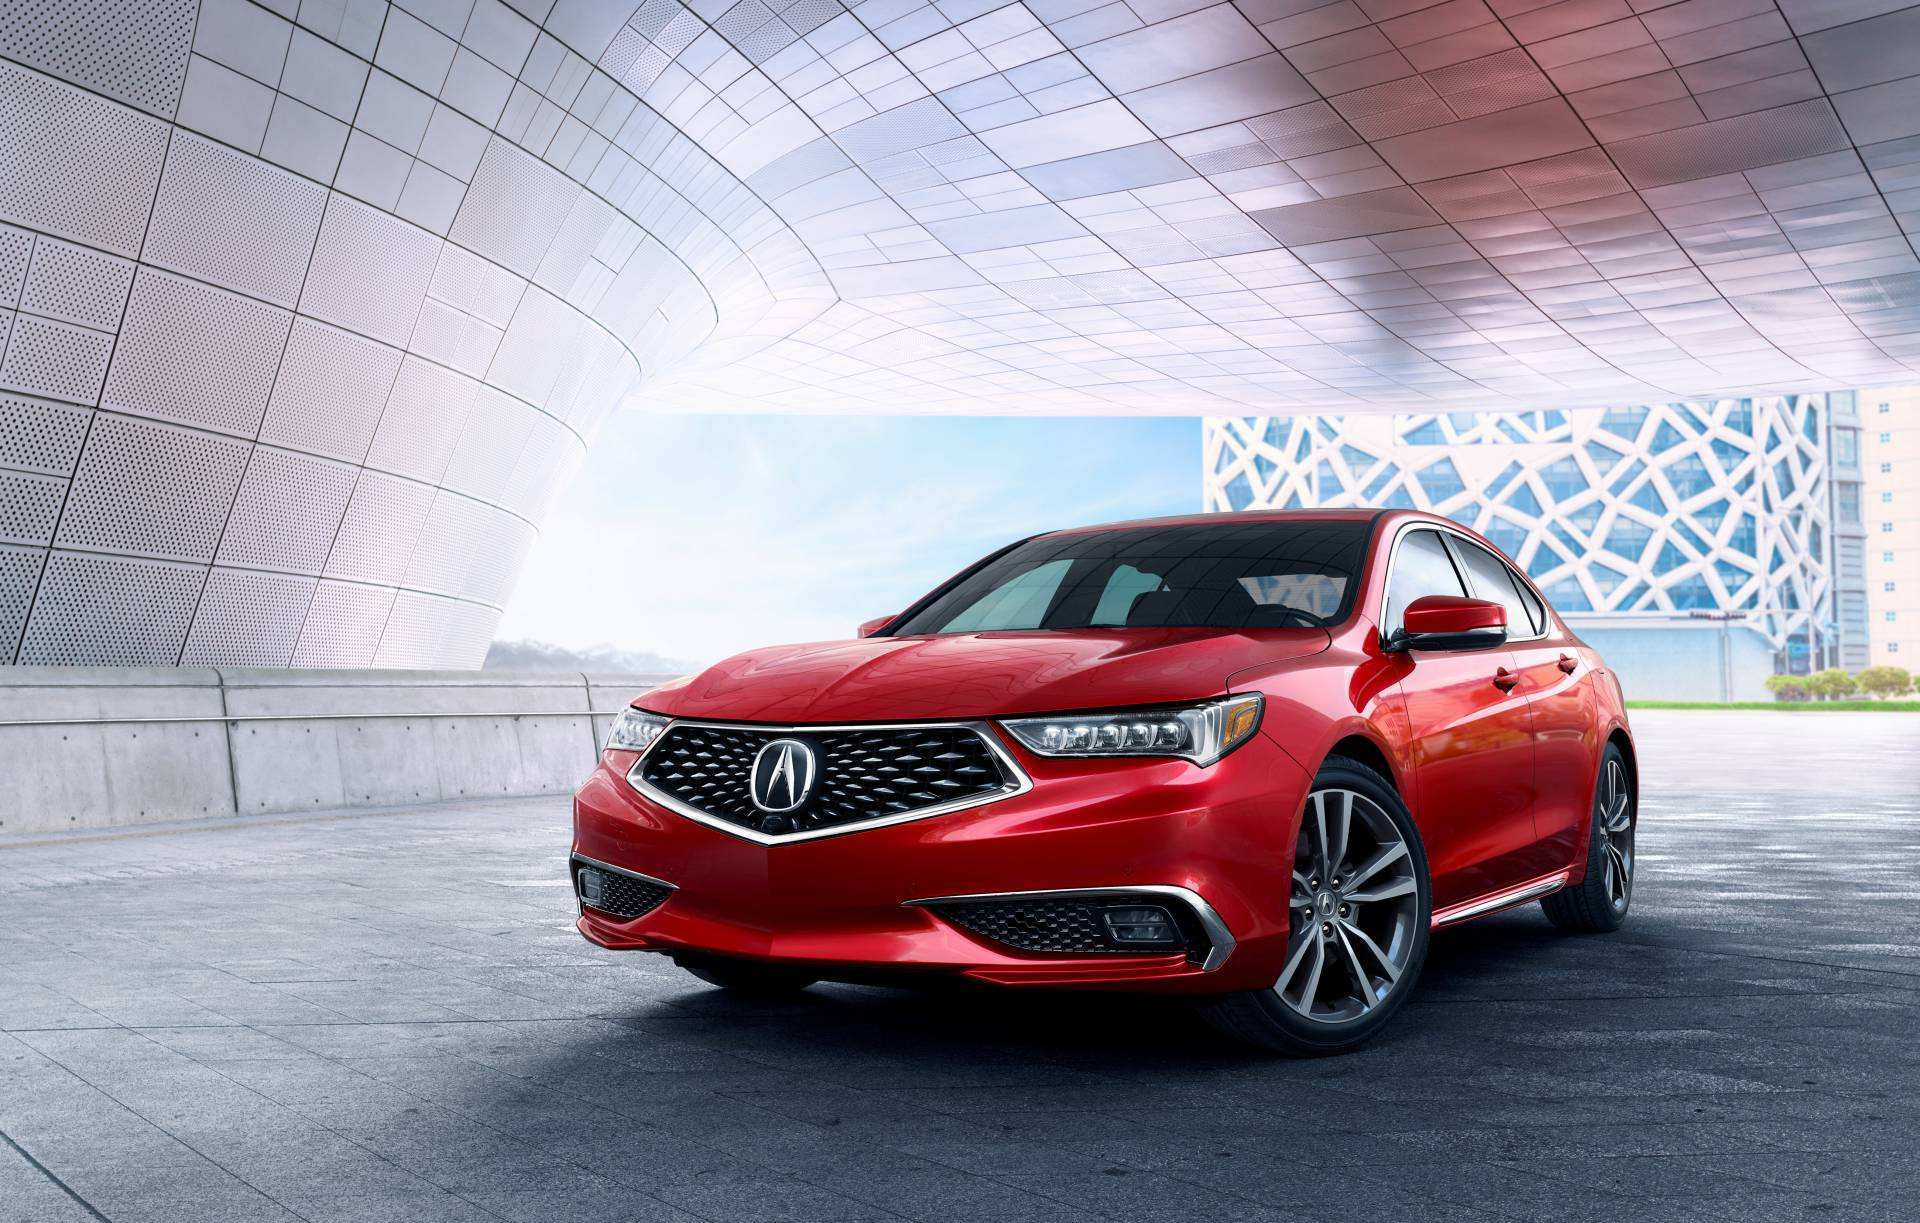 71 Best Review 2019 Vs 2020 Acura Tlx History by 2019 Vs 2020 Acura Tlx